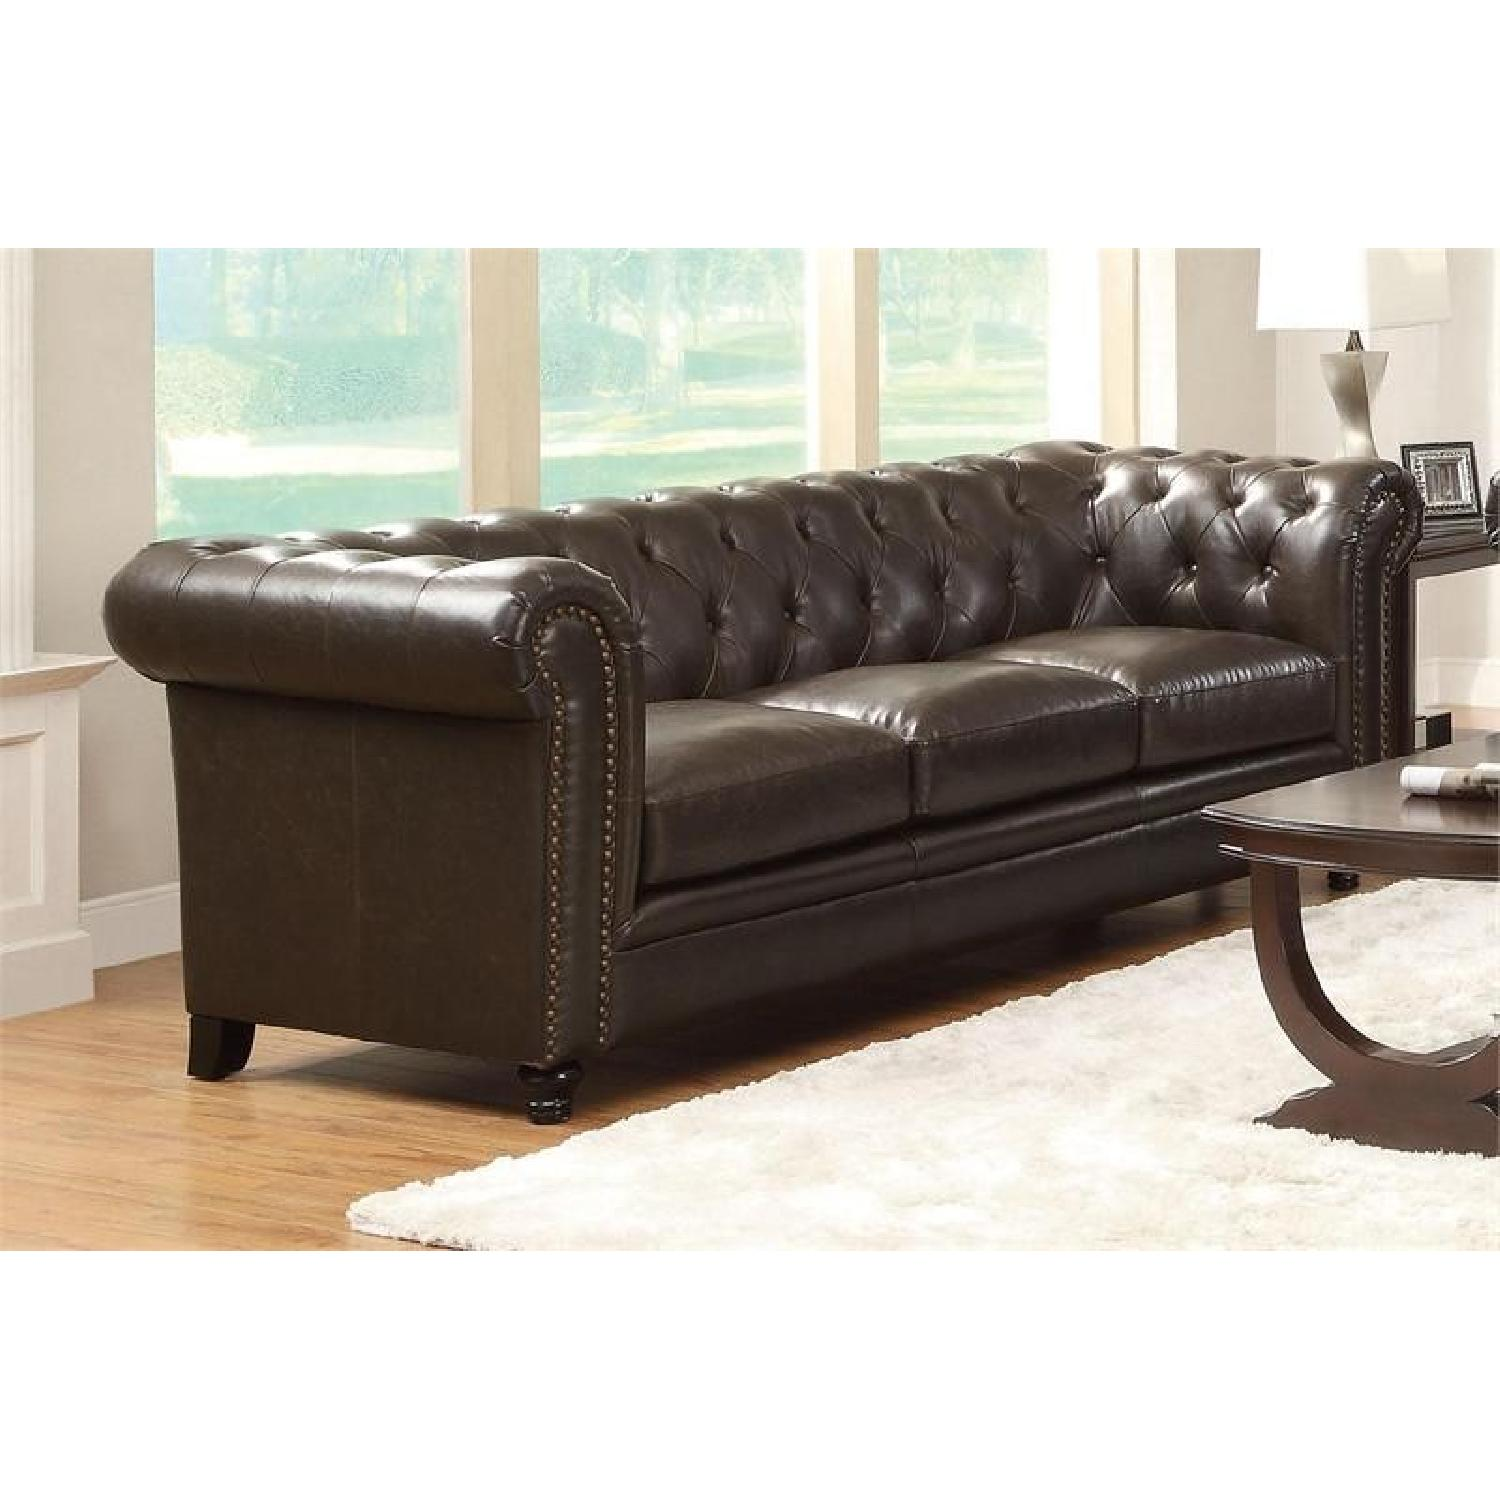 Chesterfield Style Sofa w/ Button Tufted Back & Feather/Down Filled  Cushions in Brown Bonded Leather Match